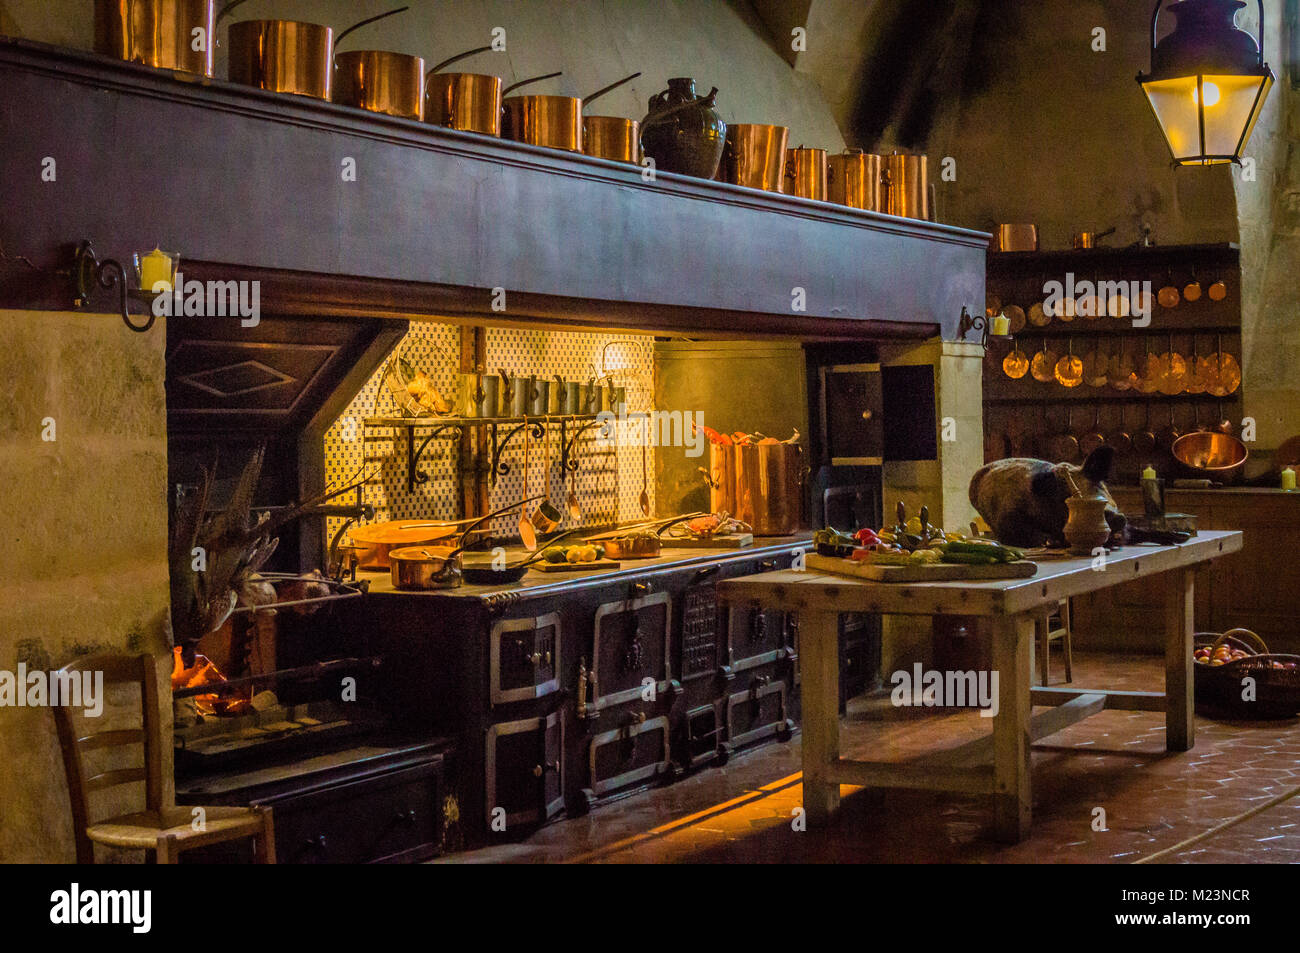 Antique Kitchen From The 18th Century With Copper Saucepans